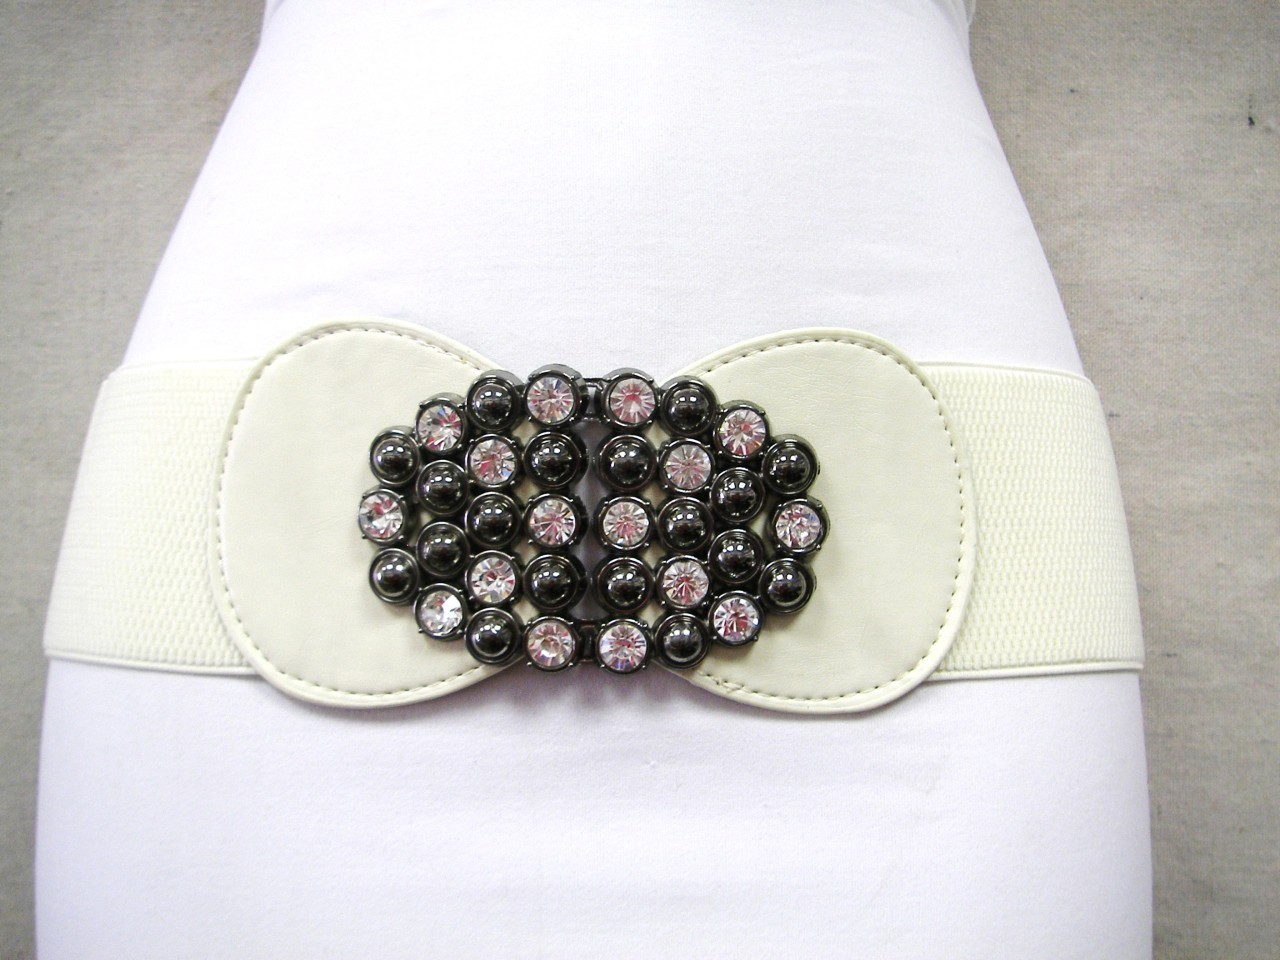 "WOMEN CREAM WAIST ELASTIC BELT W A FLOWER MARBLES AND RHINESTONES BUCKLE 31""-46"""